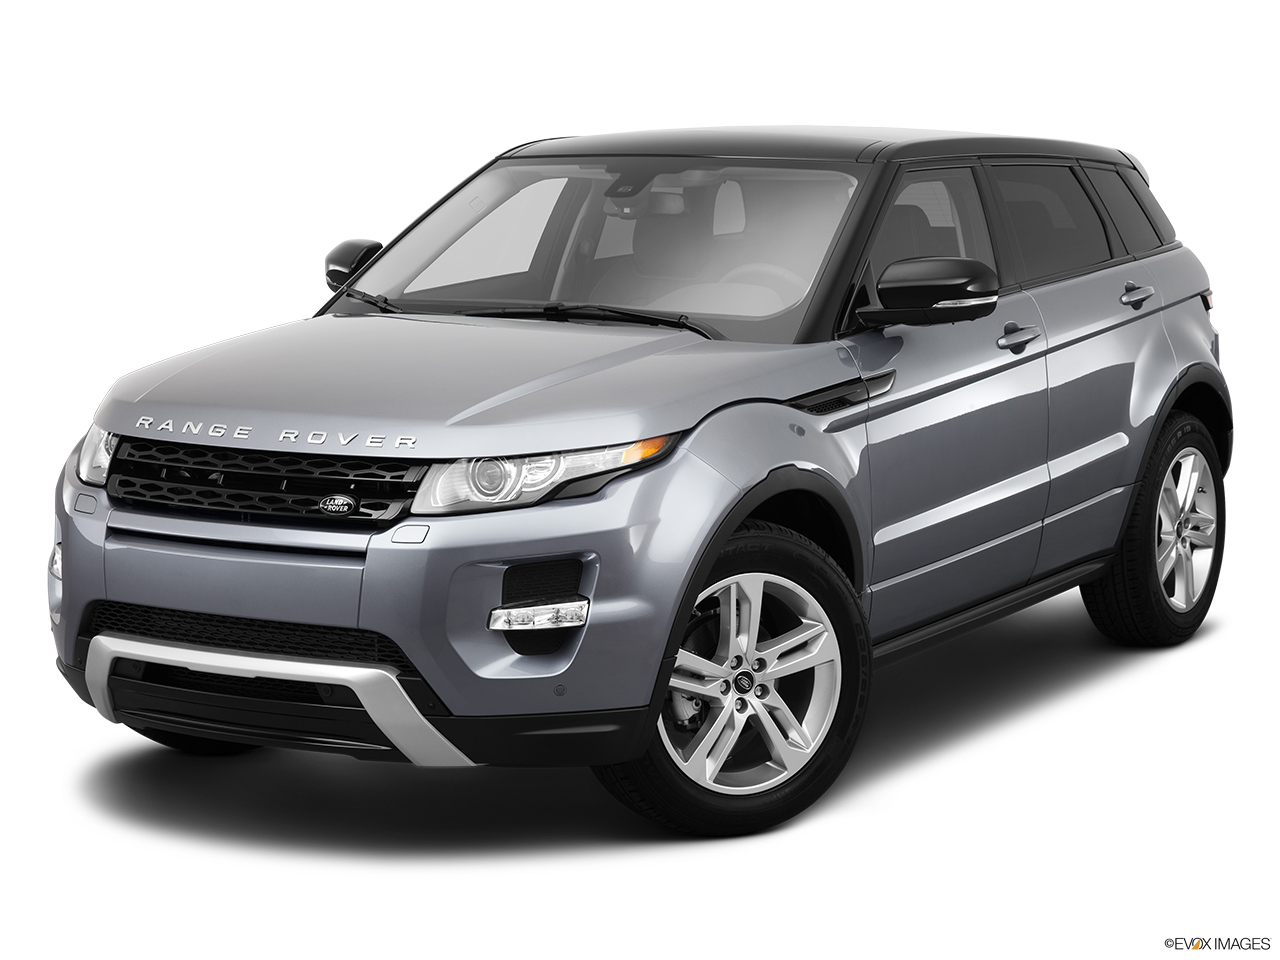 2014 land rover range rover evoque 5dr hatchback pure premium. Black Bedroom Furniture Sets. Home Design Ideas